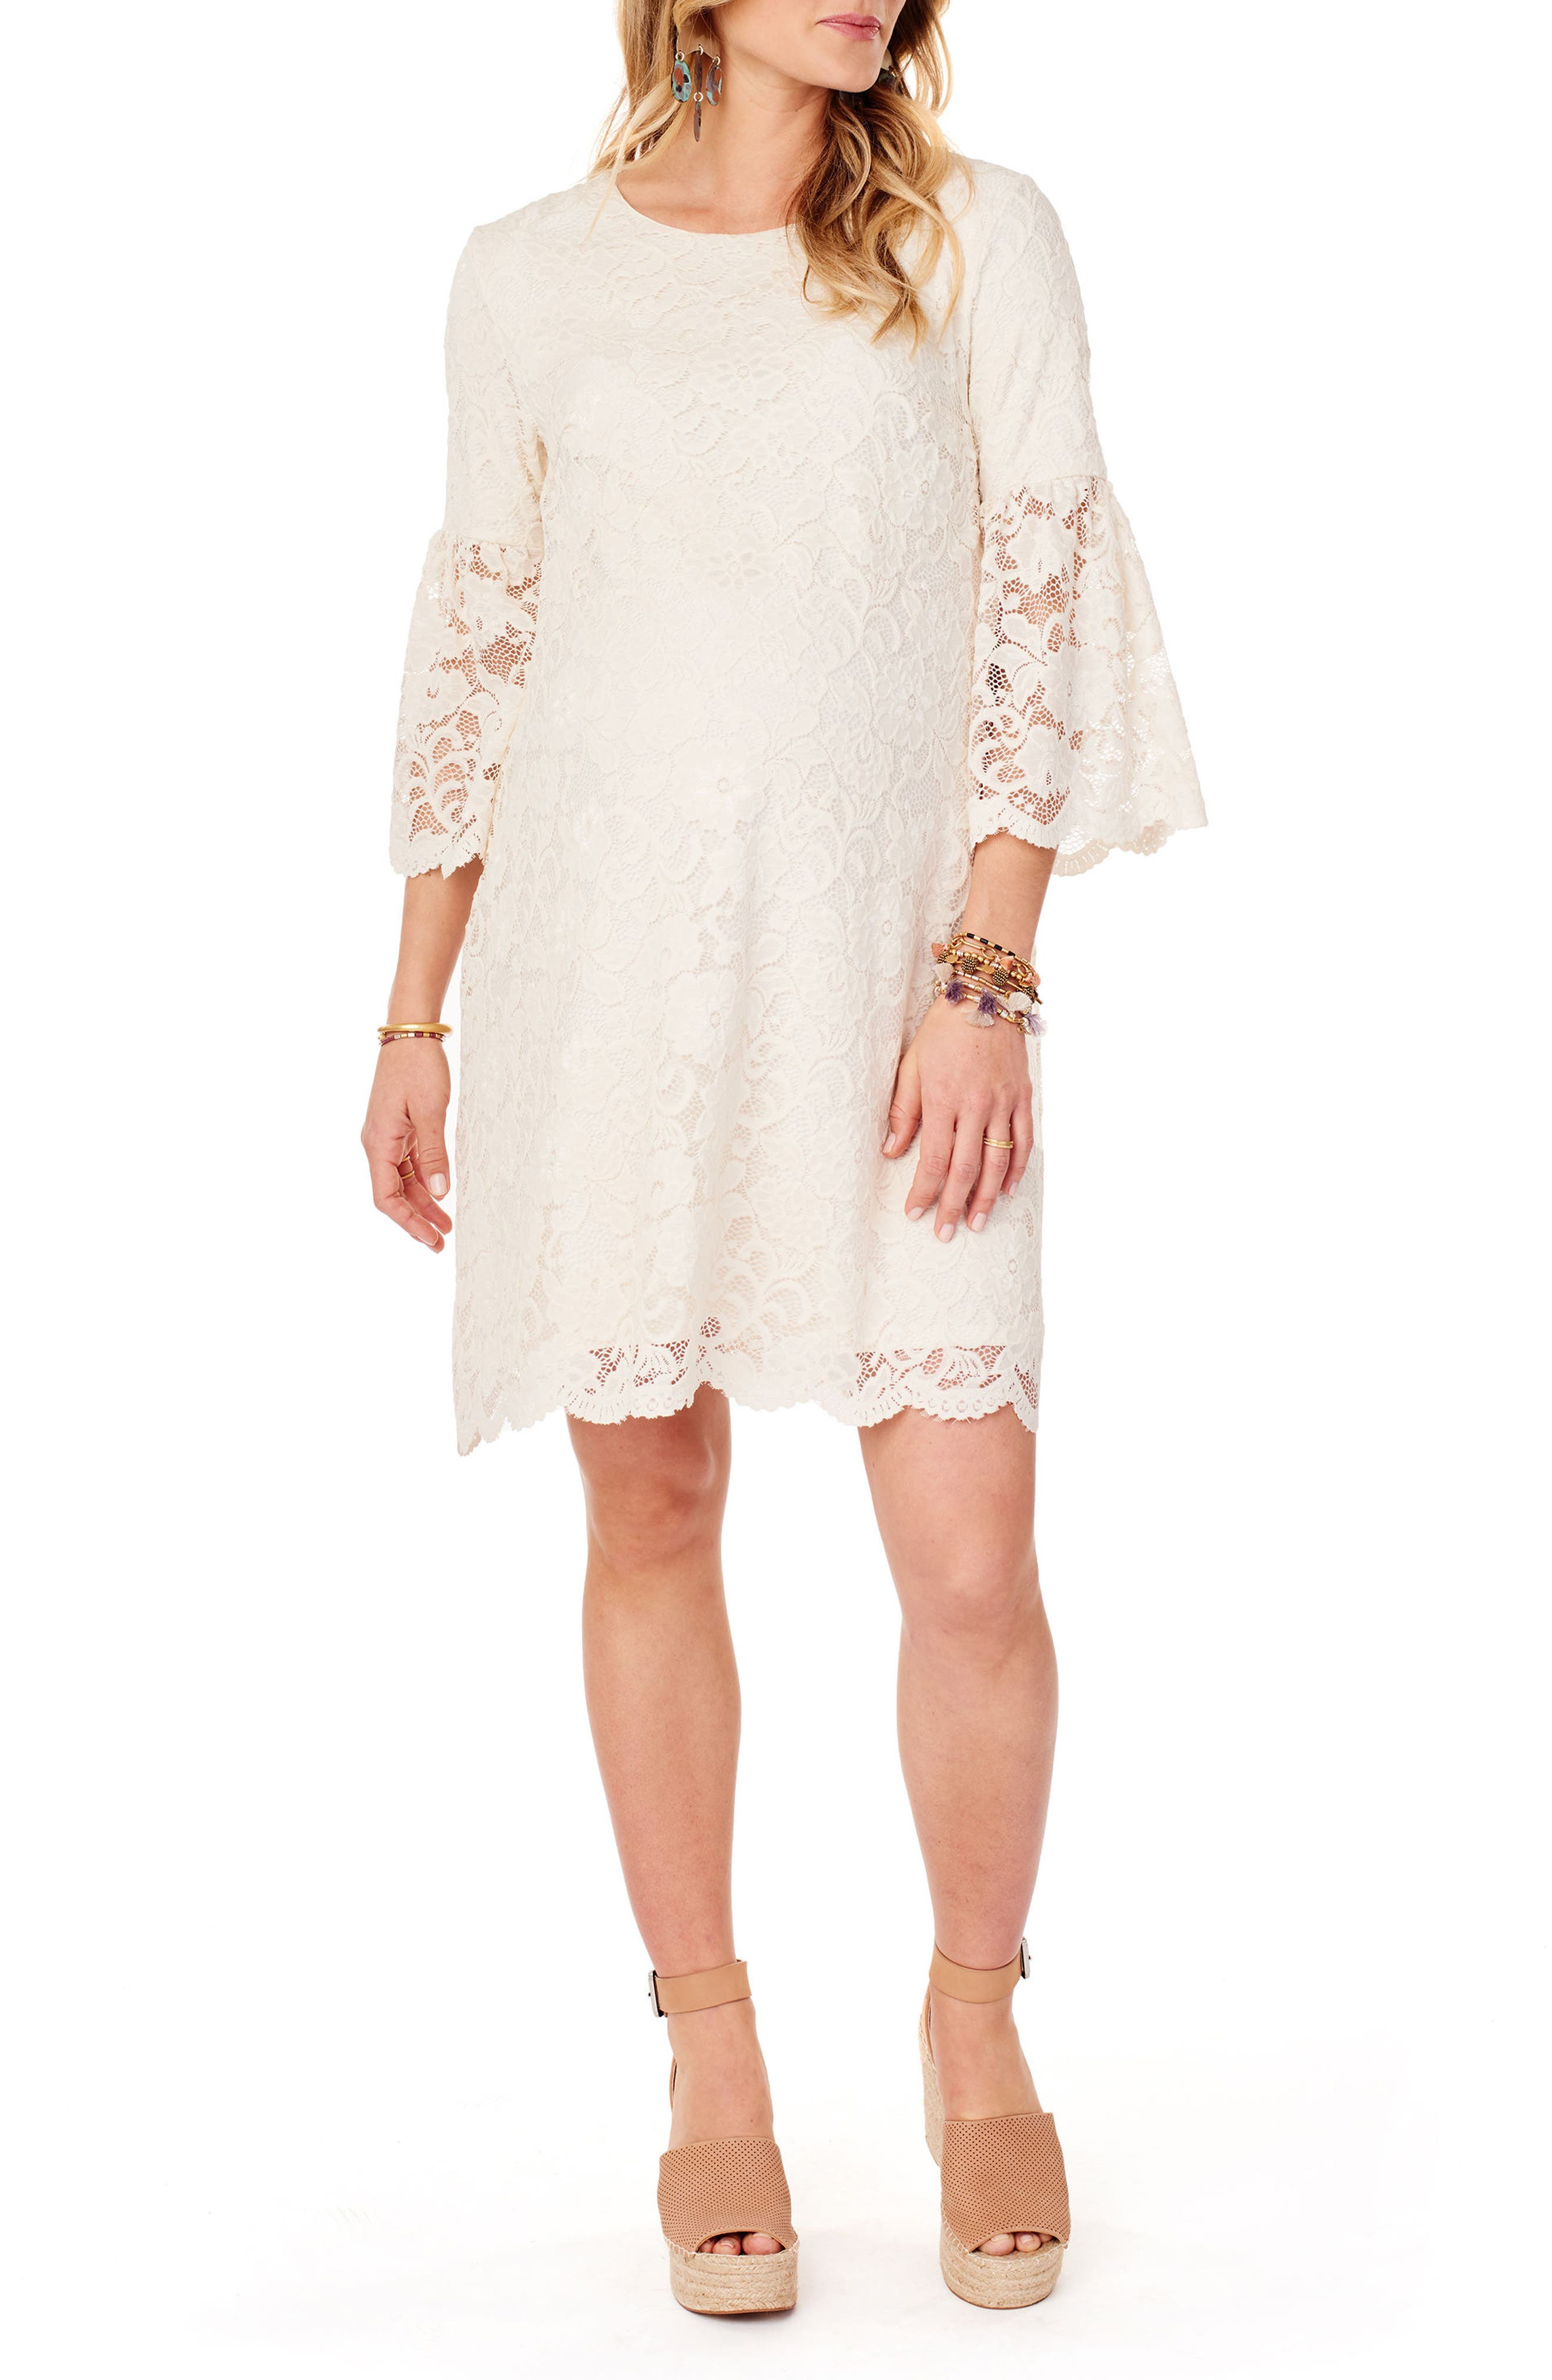 Ingrid & Isabel® Lace Bell Sleeve Maternity Dress